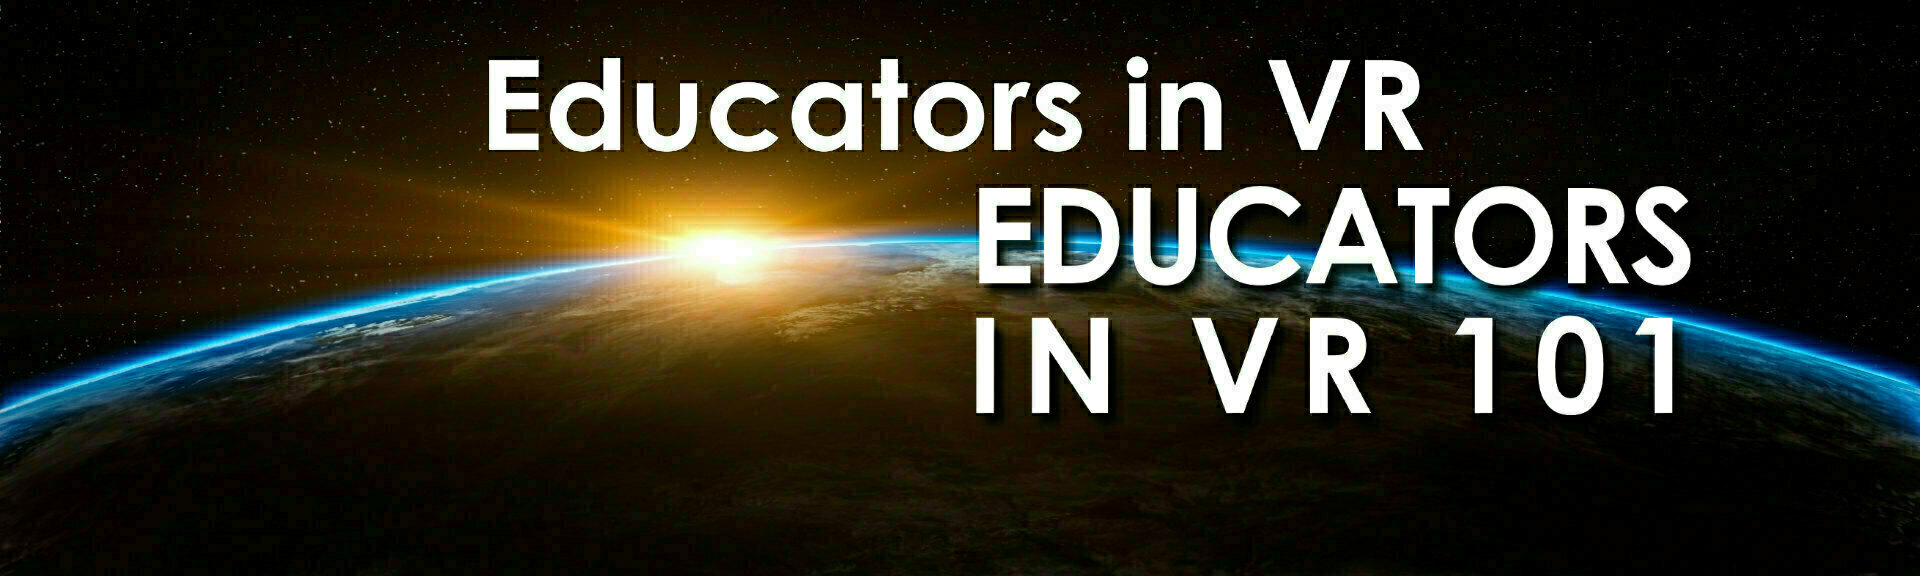 Educators in vr   educators in vr 101   altspace banner